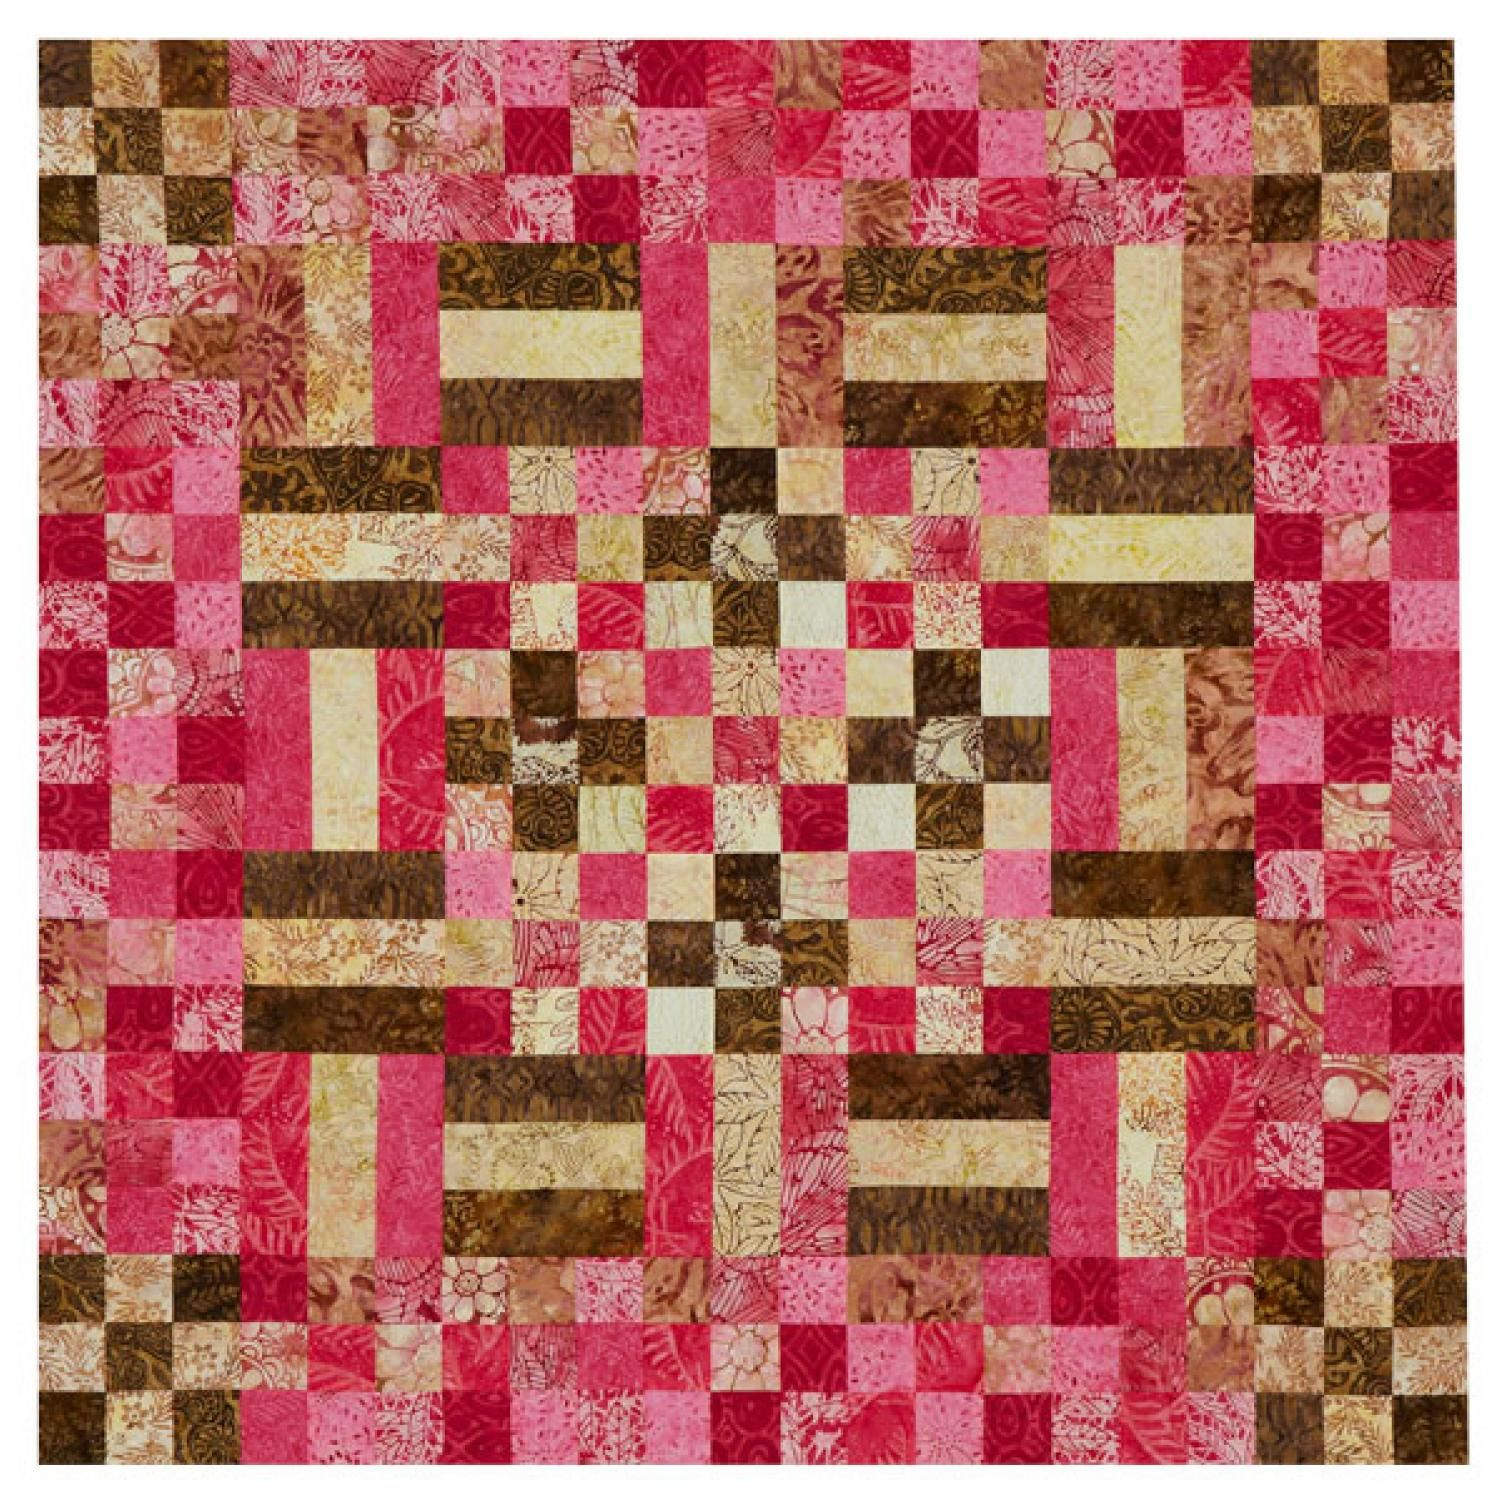 Quilt Patterns, Quilts, Patch Quilt